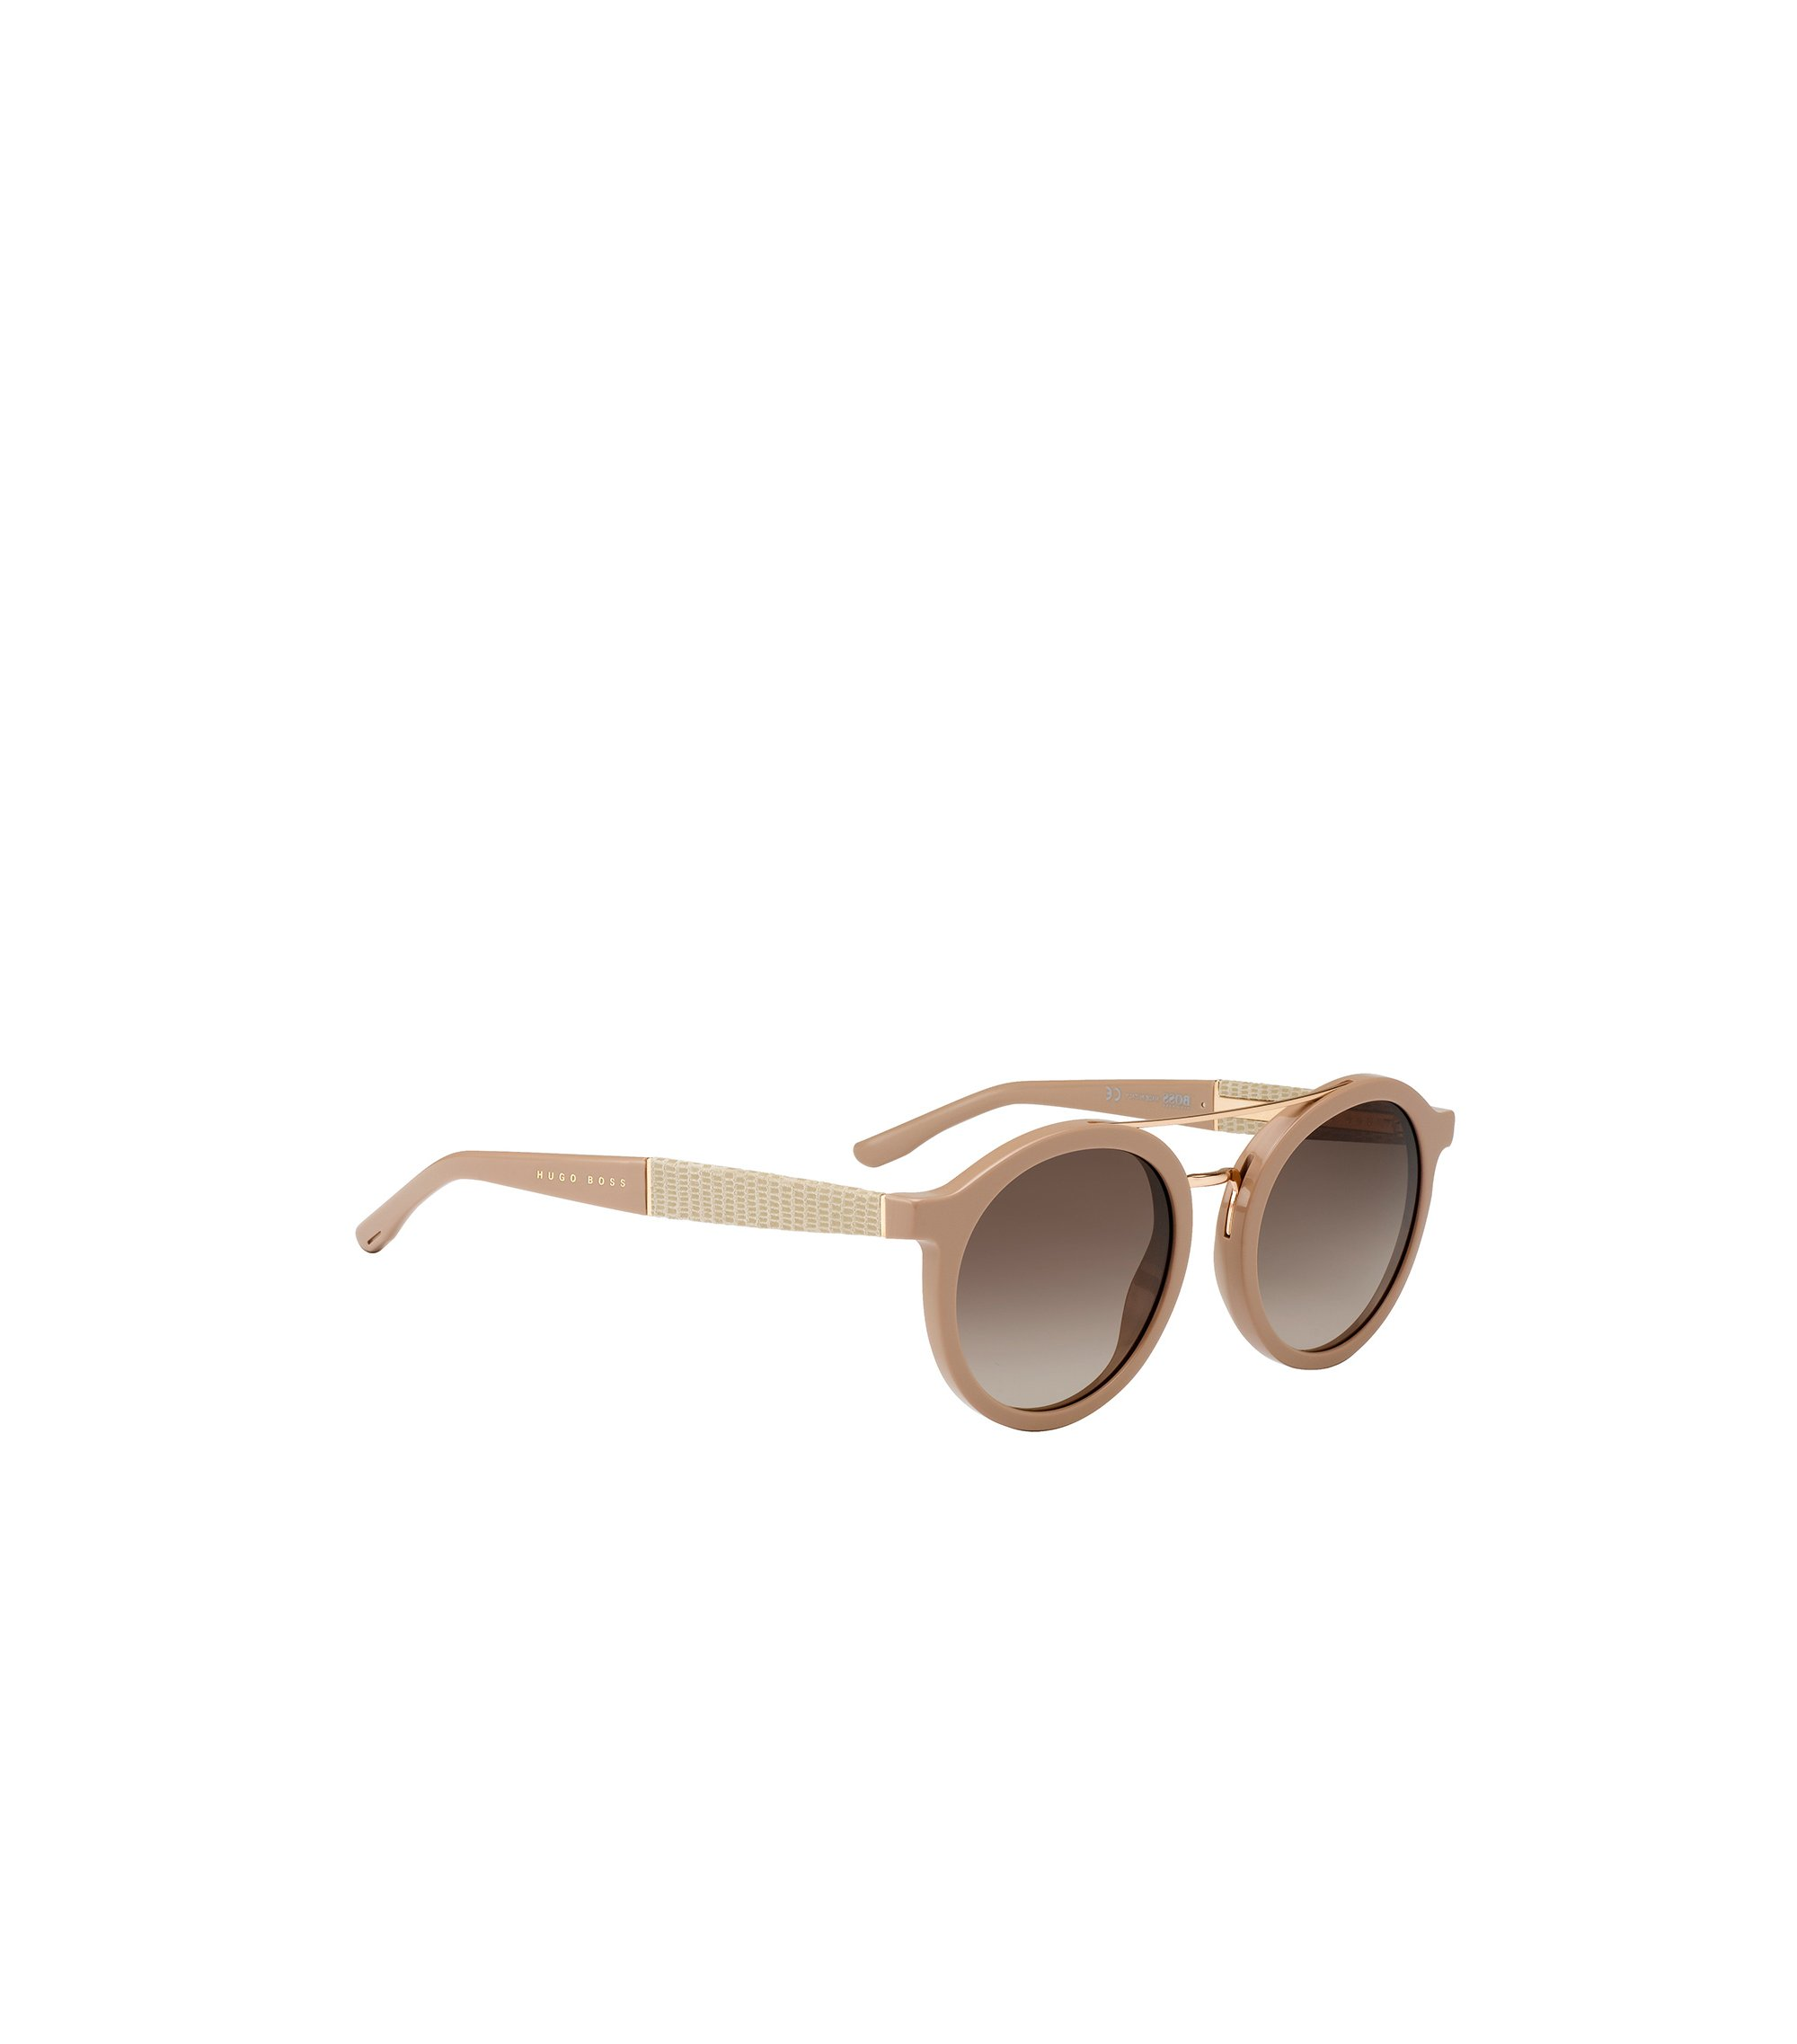 Round sunglasses with embossed leather temples, Beige